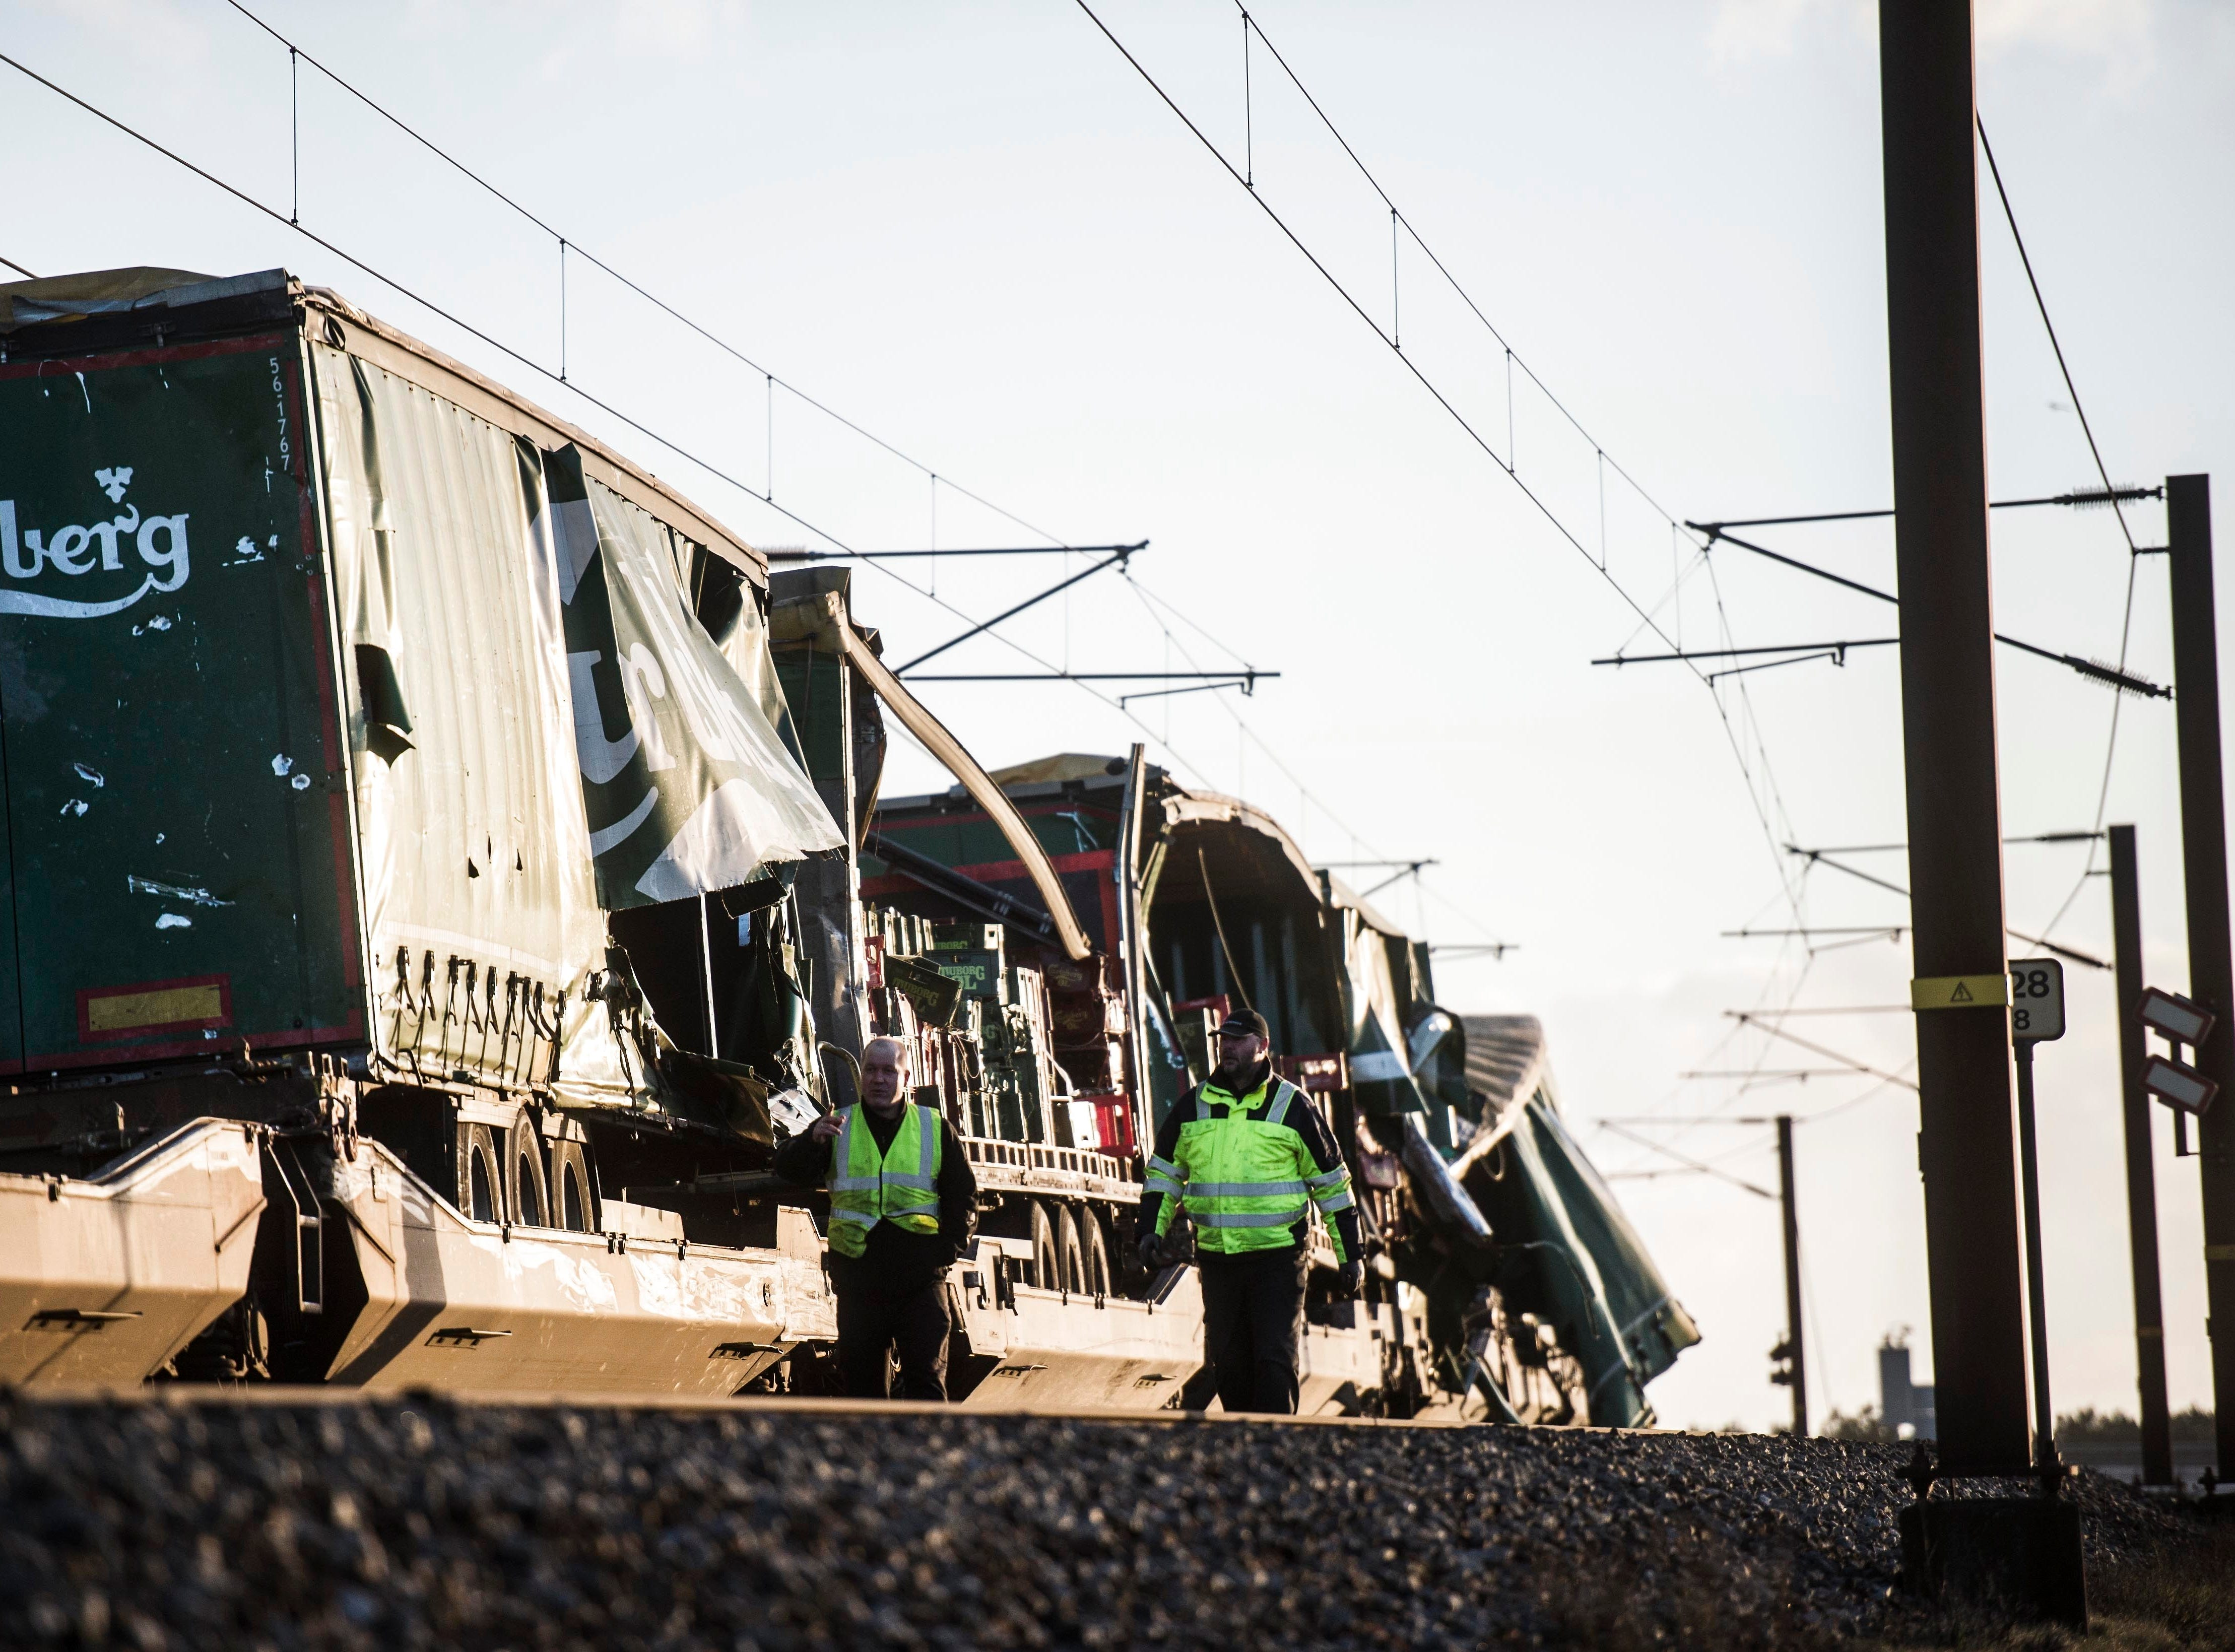 People walk near damaged cargo compartments on a train parked near the Storebaelt bridge, near Nyborg in Denmark, Wednesday, Jan. 2, 2019. Danish police say several people have been killed in a train accident on a bridge linking the central islands of Zealand and Funen. Police did not provide further details about those killed or the number of people injured in Wednesday's incident, which took place about 8 a.m. local time. Danish media reported that a tarpaulin on a freight train hit a passenger train going in the opposite direction, prompting it to brake suddenly. (Tim K. Jensen/Ritzau Scanpix via AP) ORG XMIT: TH804